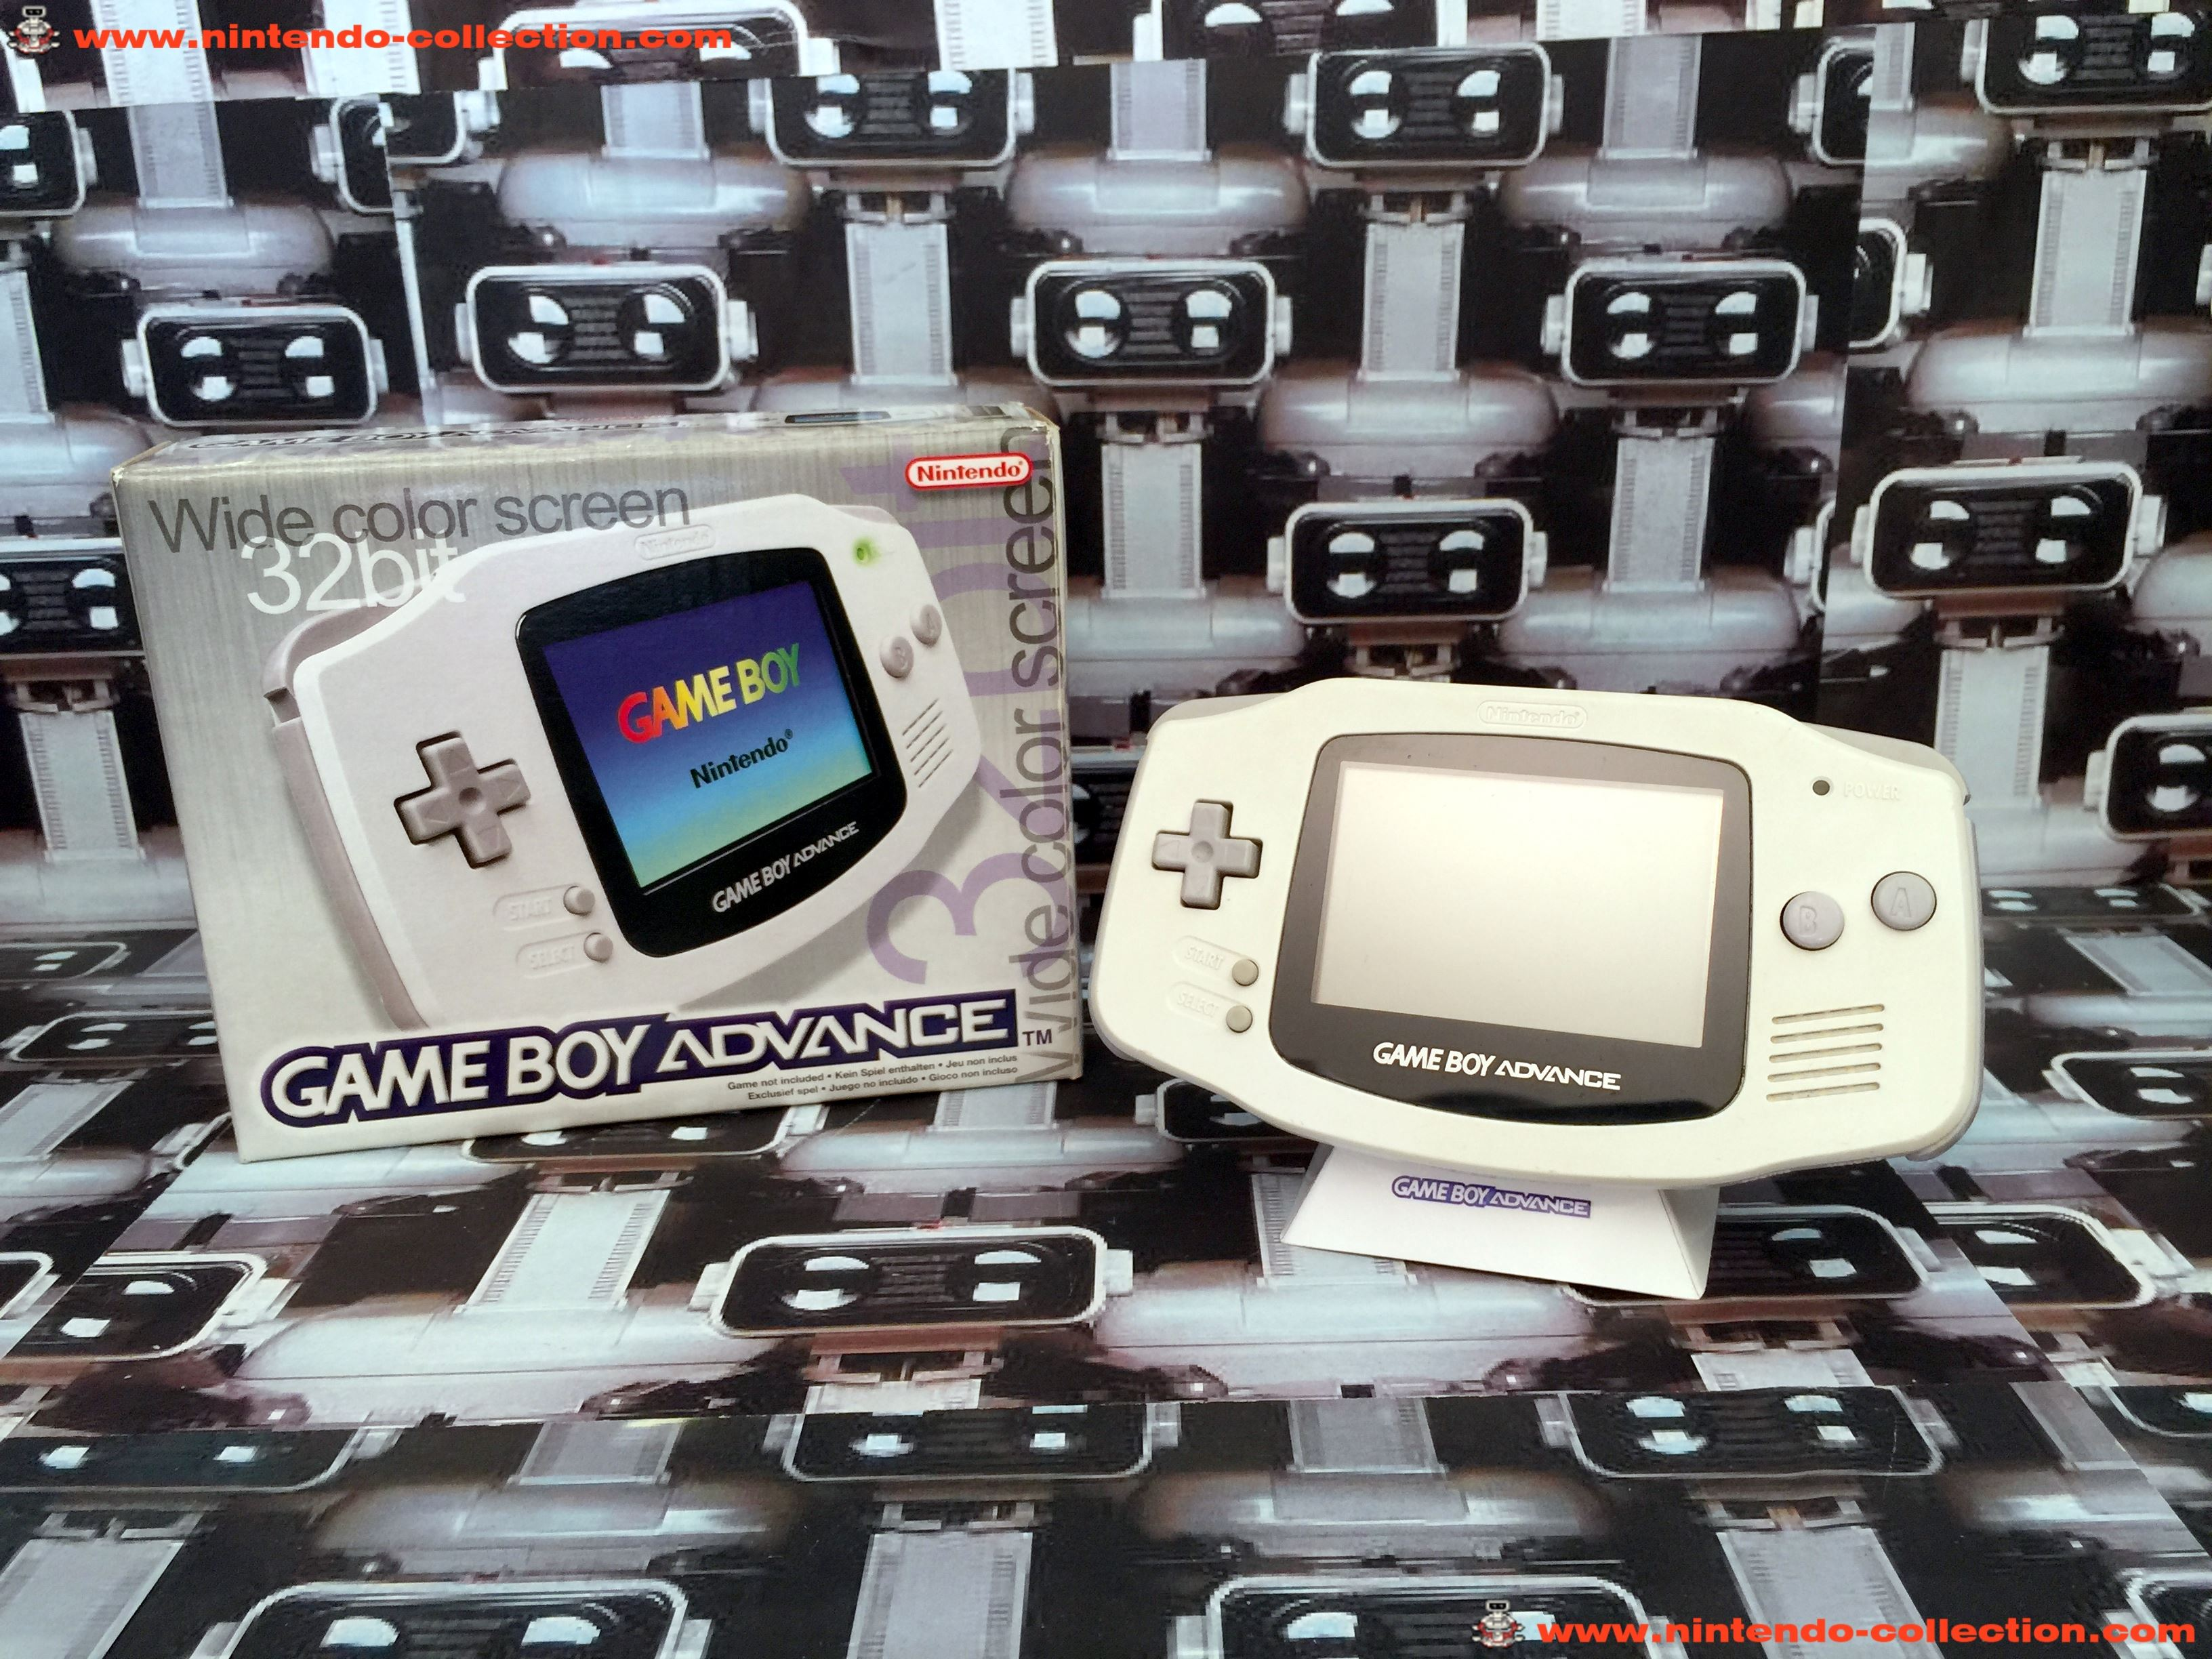 www.nintendo-collection.com - Gameboy Advance GBA White Blanche european europeenne